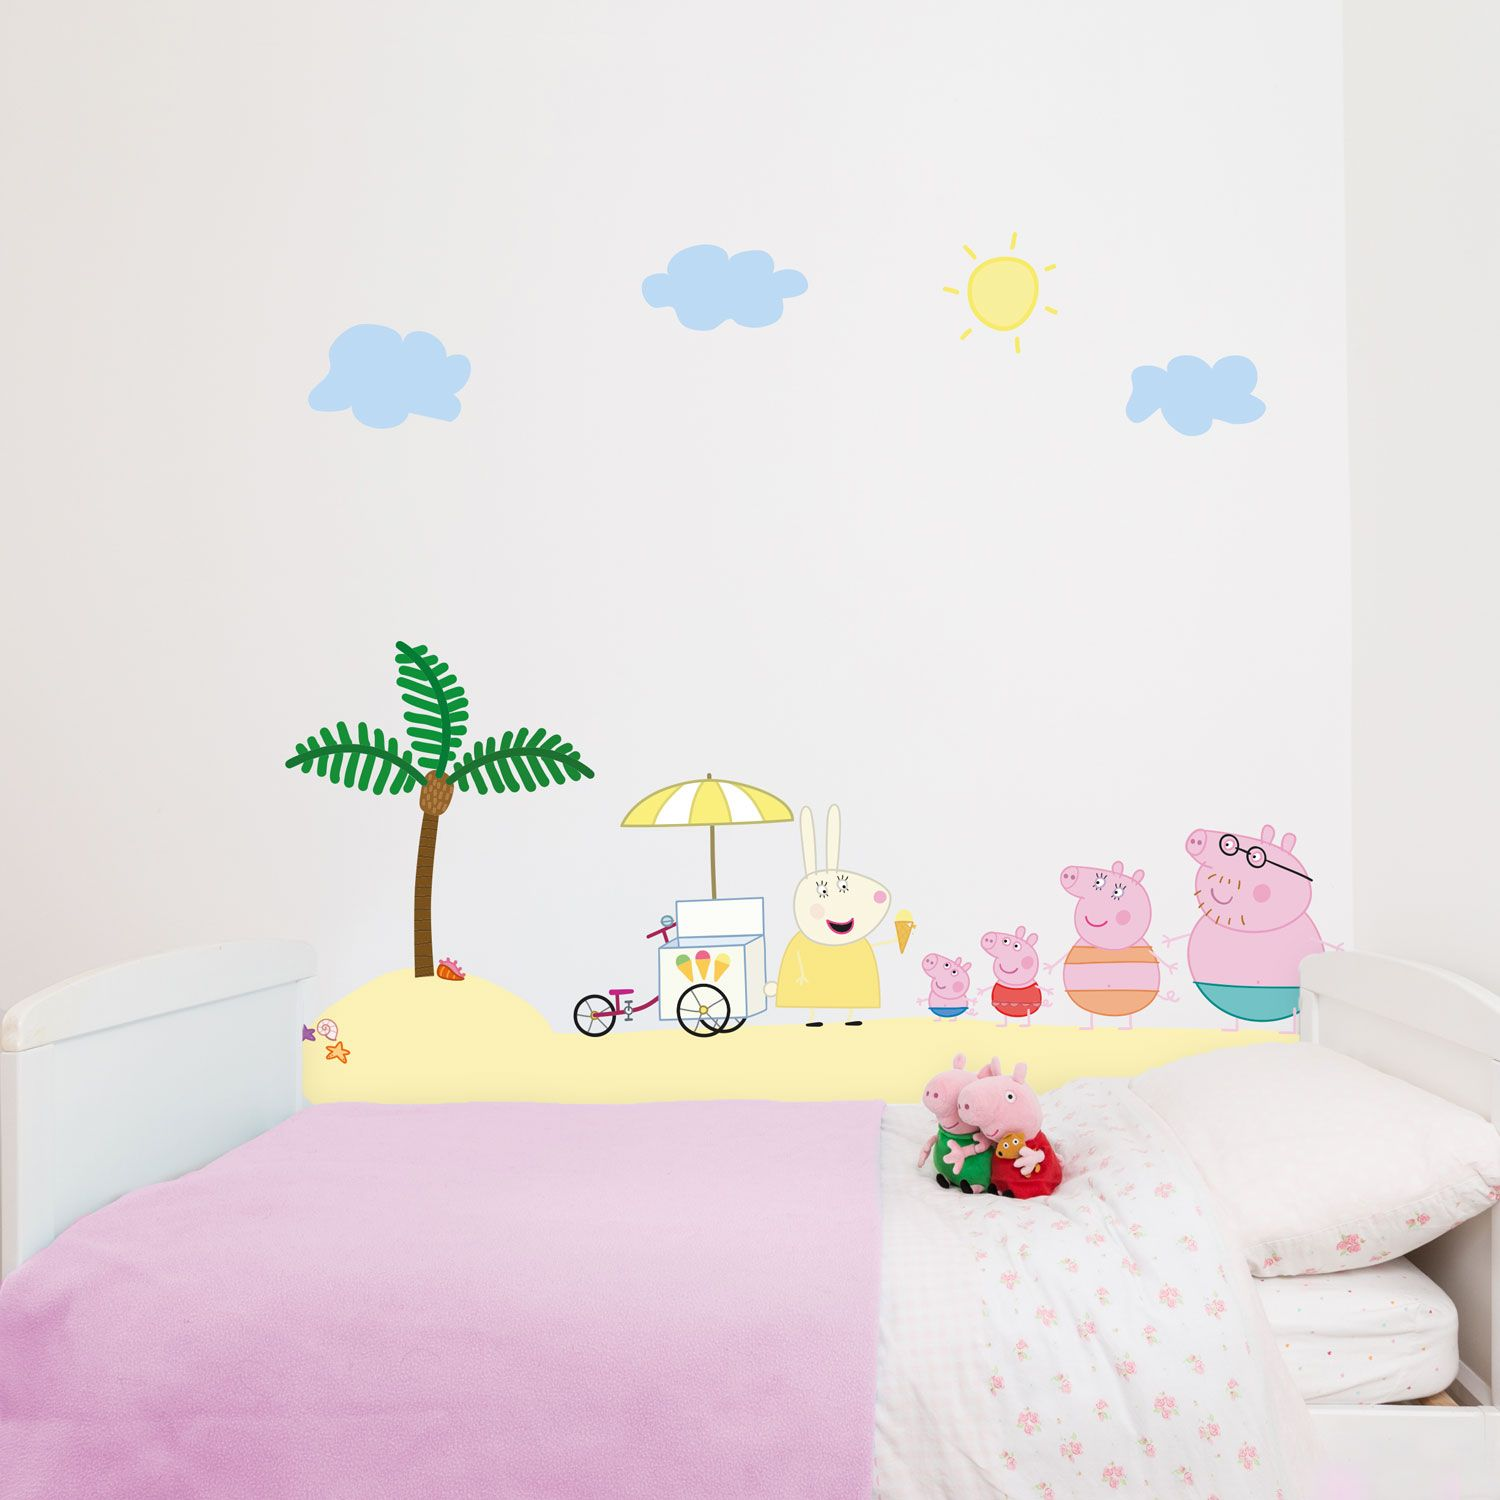 Peppa Pig and Family on holiday wall stickers pack